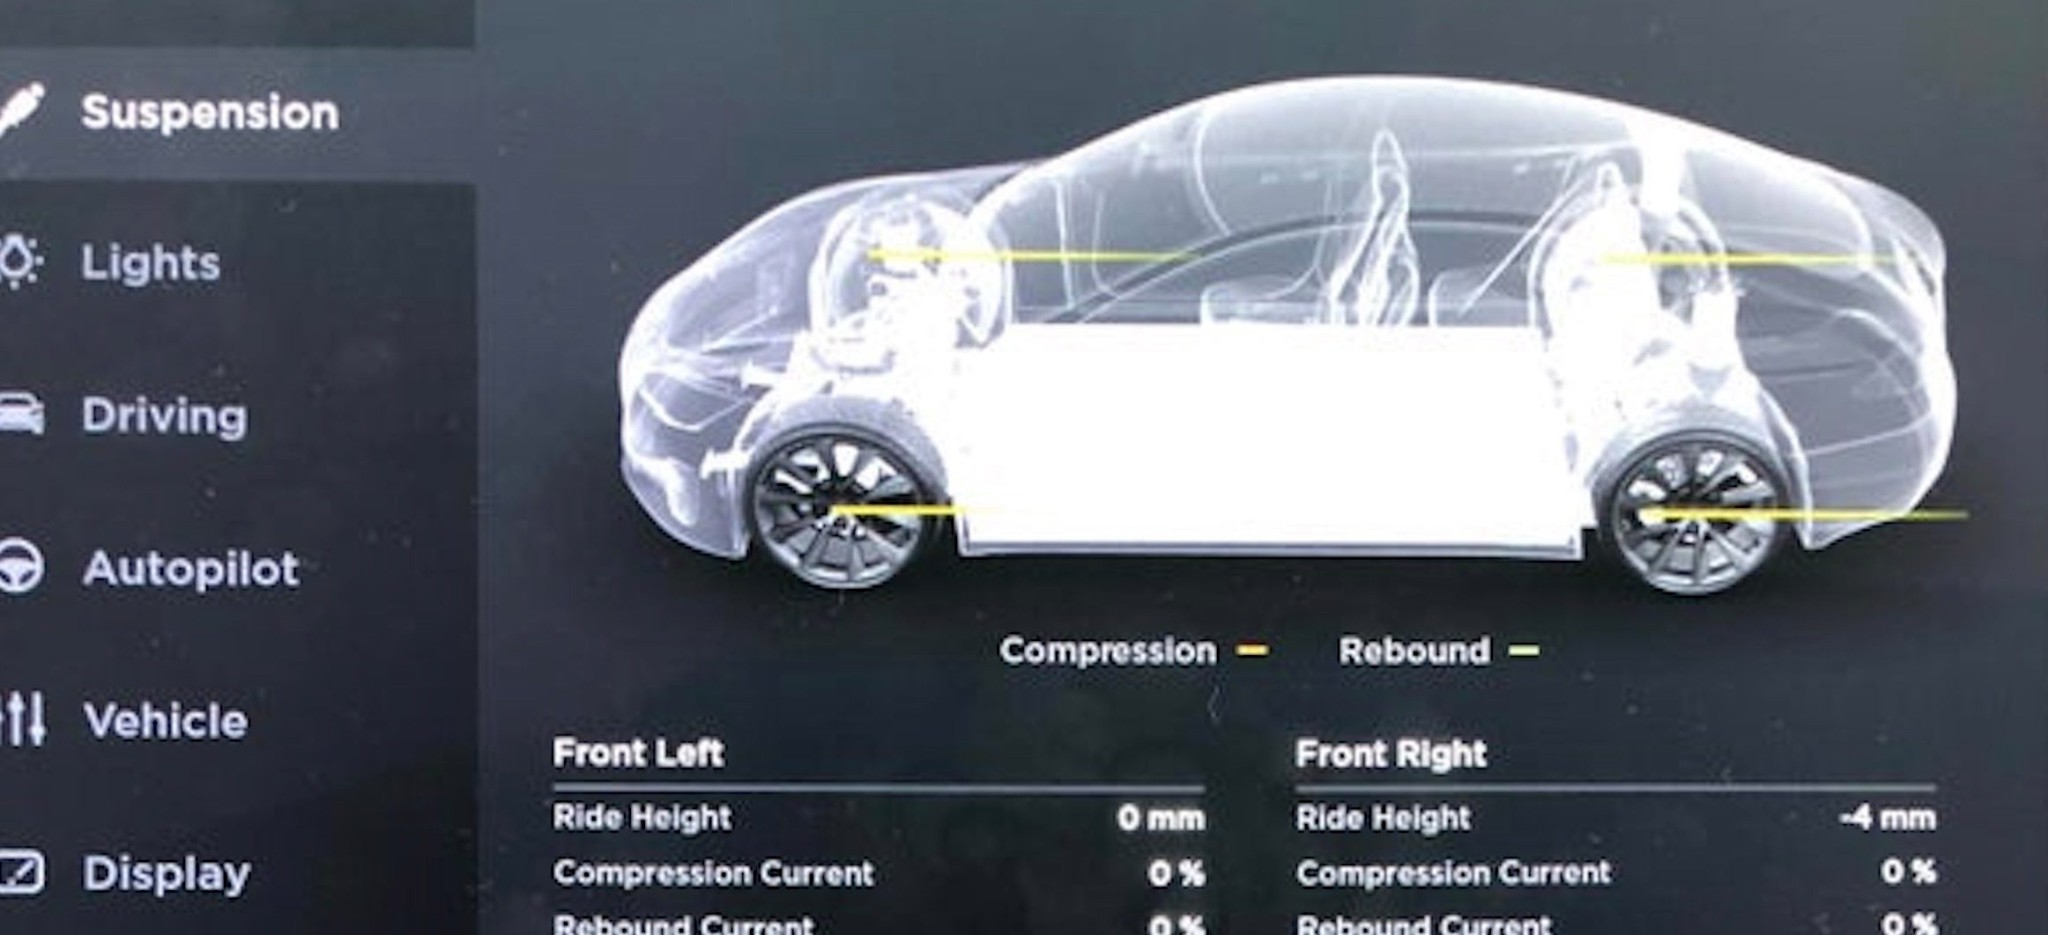 Tesla releases software update with interesting new features with suspension settings, and more - Electrek